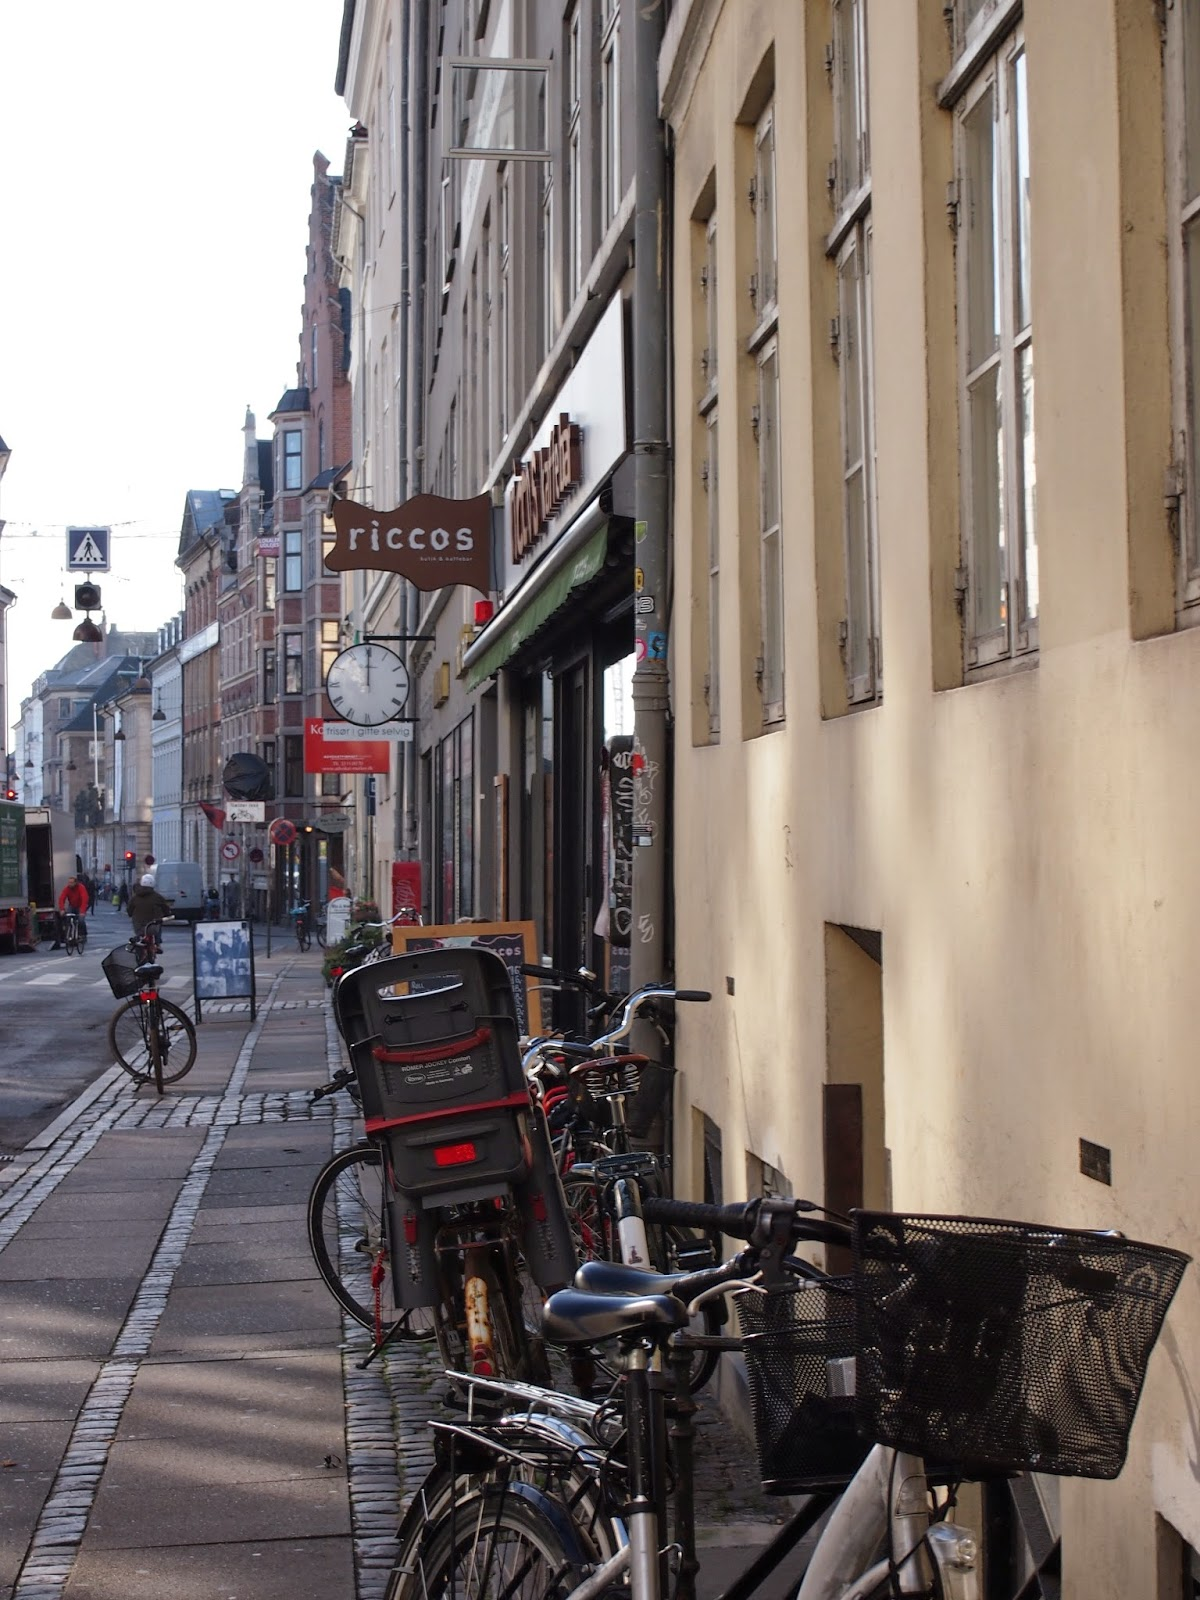 Ricco's cafe in Copenhagen on Radhusstraede